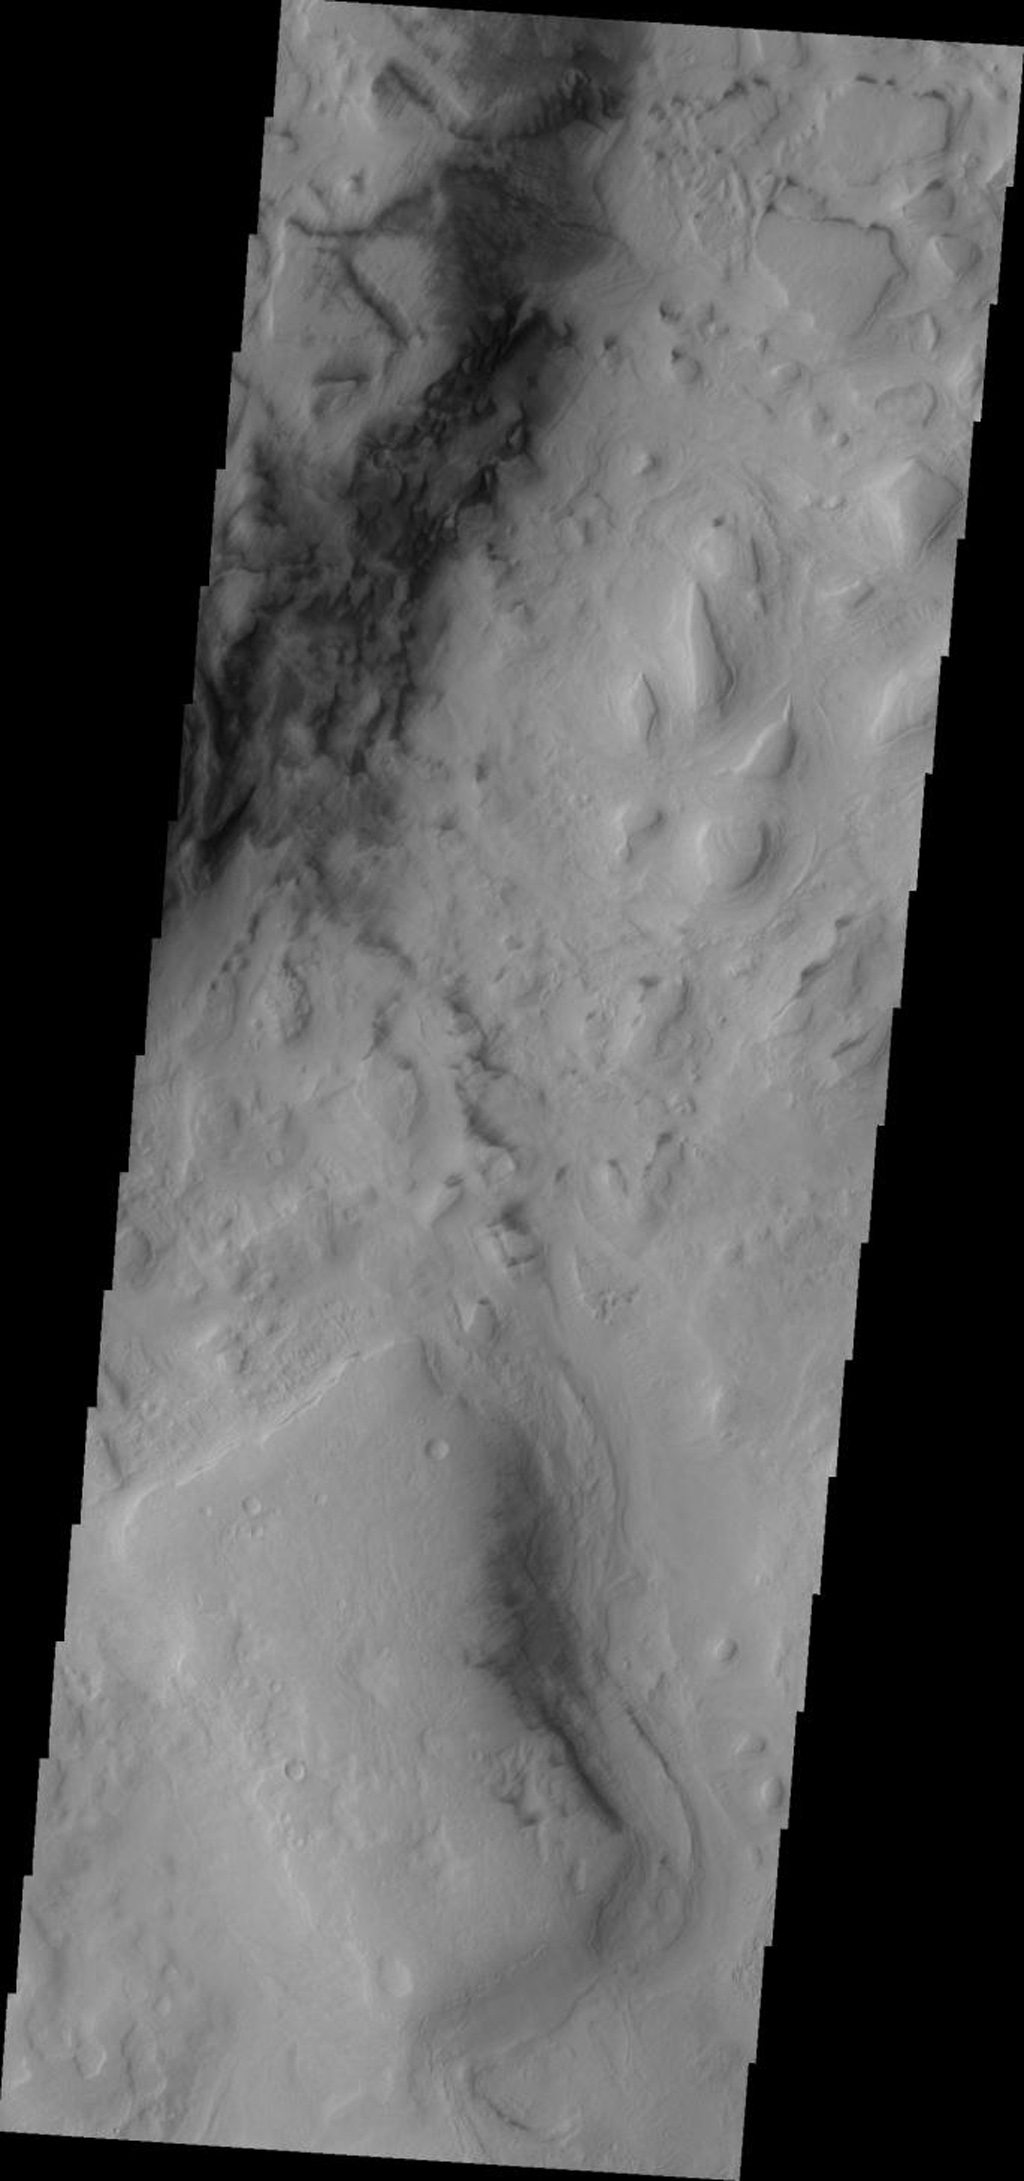 This image from NASA's Mars Odyssey shows small, dark dunes located on the floor of Hellas Basin on Mars.